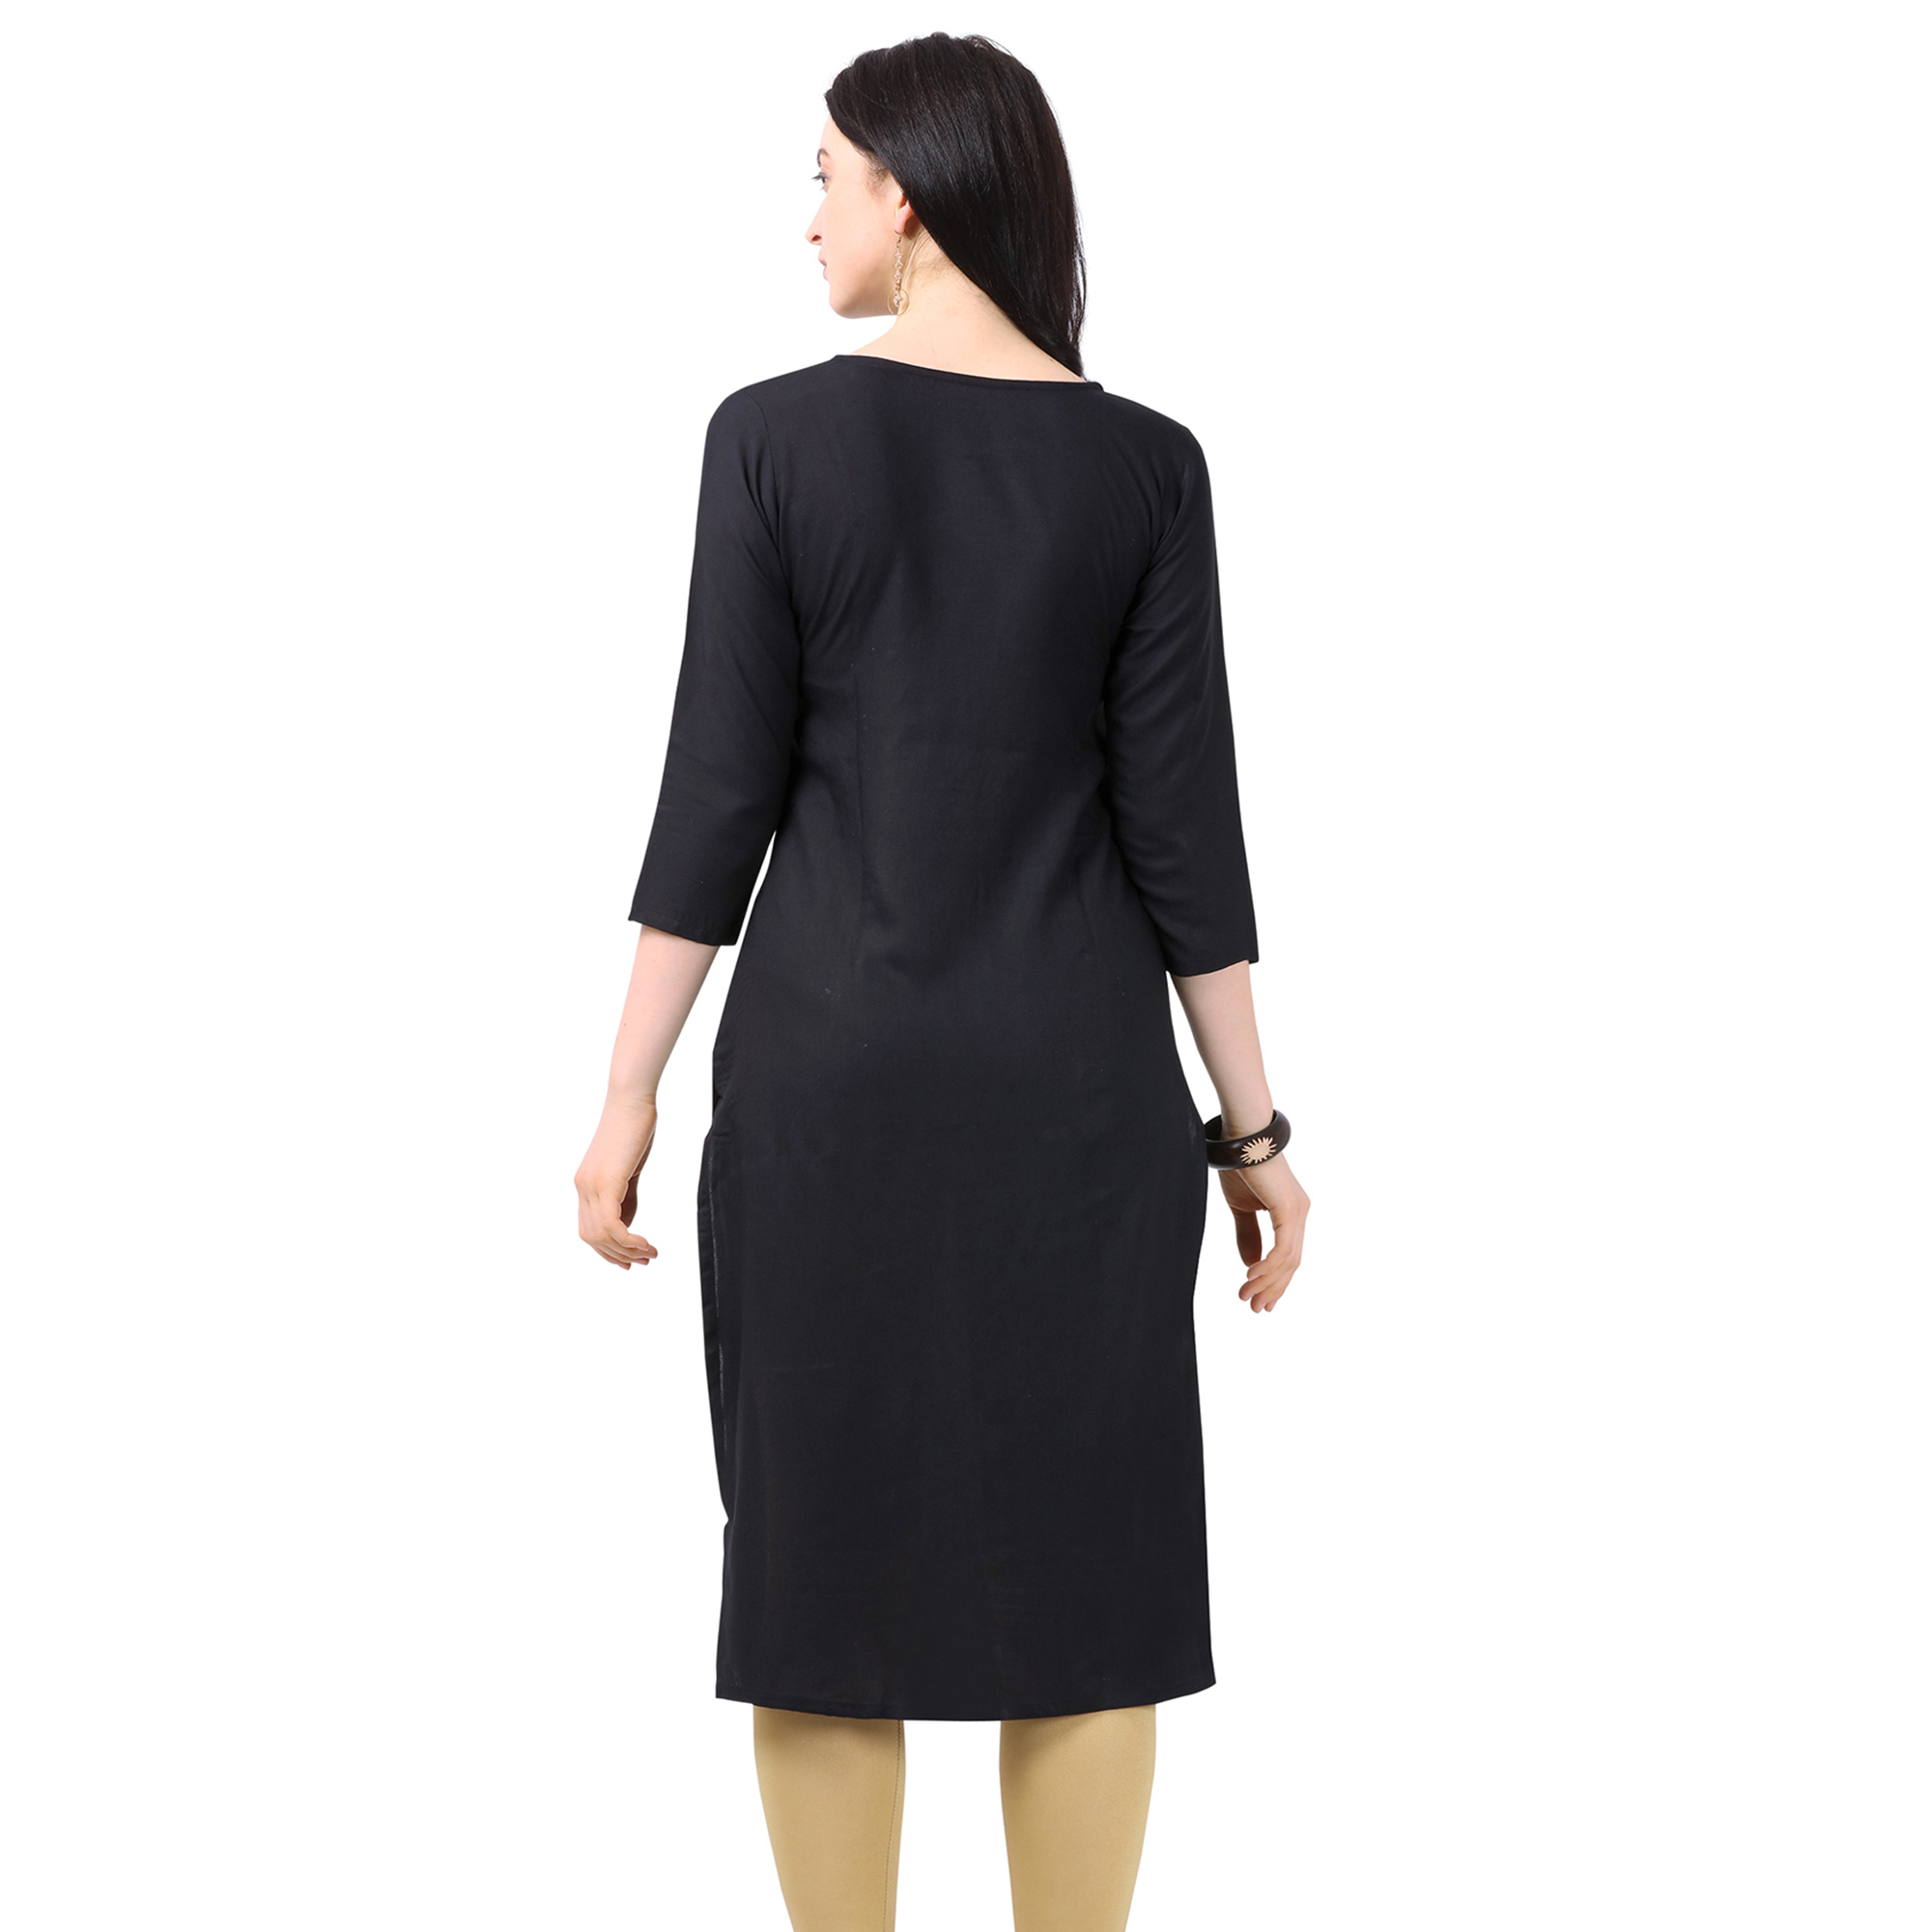 Mesmerising Black Colored Partywear Embellished Rayon Kurti